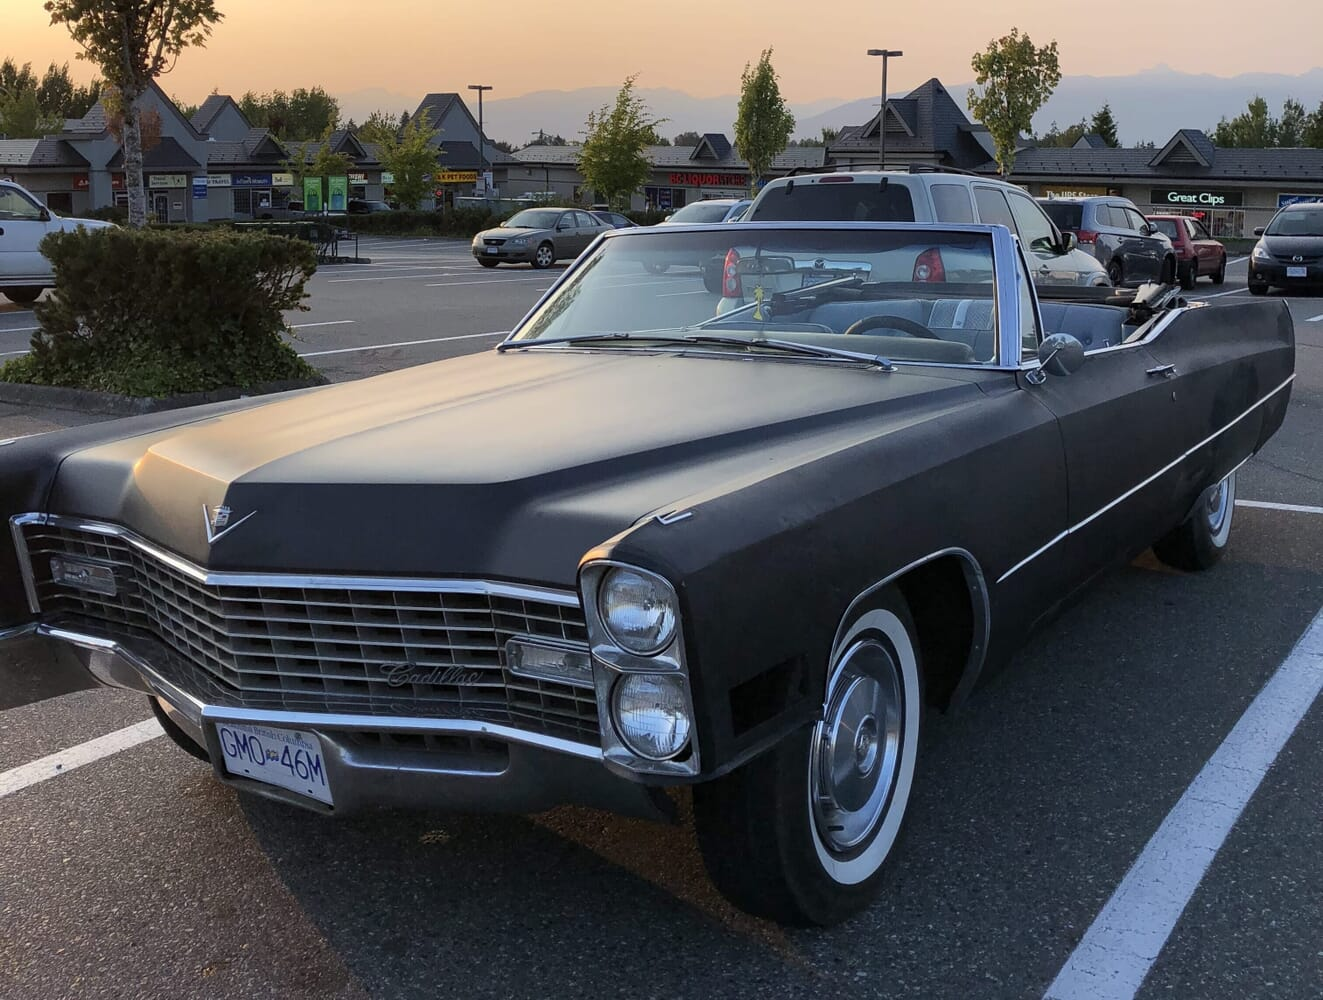 1967 Deville with flat black paint and shiny new white walls.